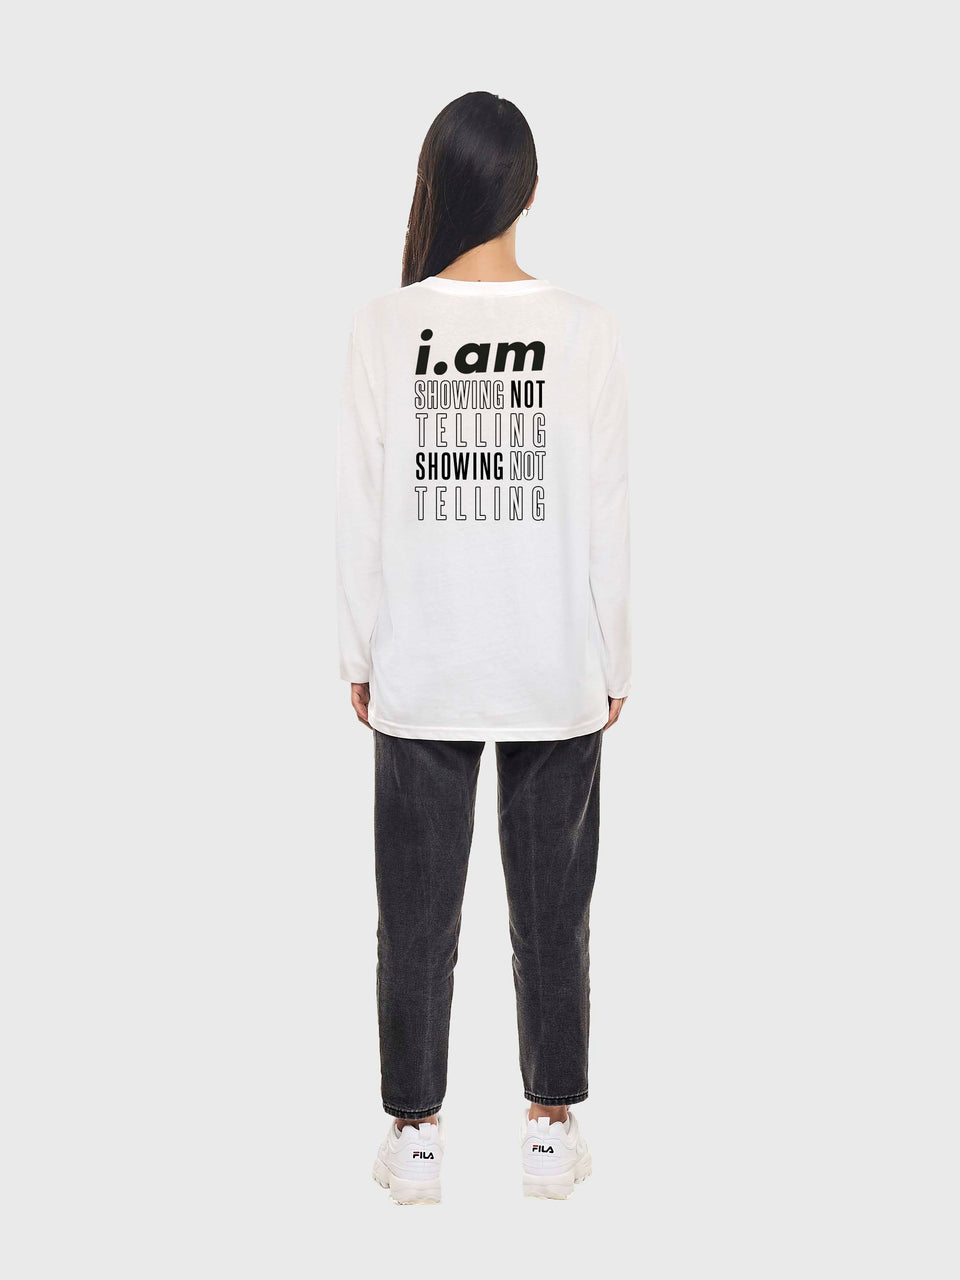 Showing not telling - White - Unisex long sleeve T